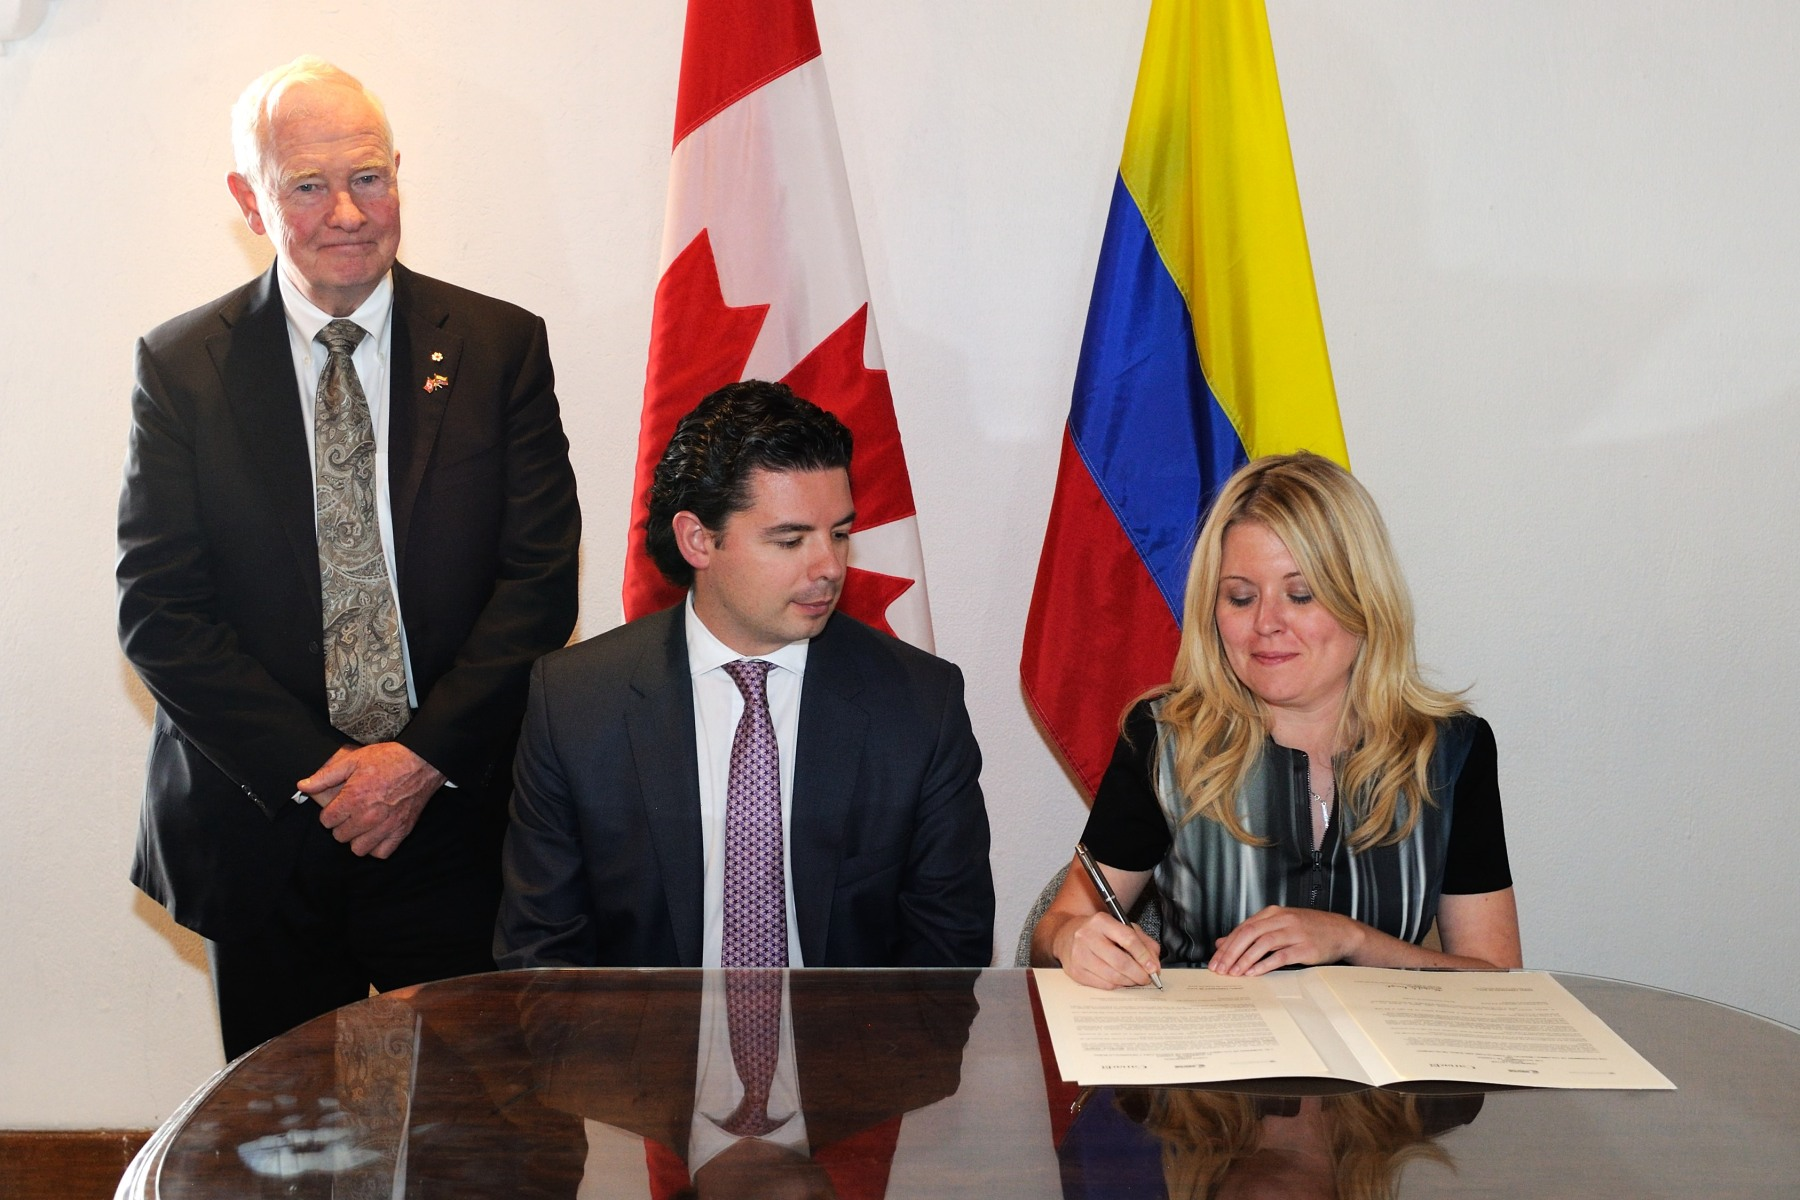 The Honourable Michelle Rempel, Minister of State (Western Economic Diversification), signed the agreements totalling $45 million in assistance, on behalf of the Canadian Government.